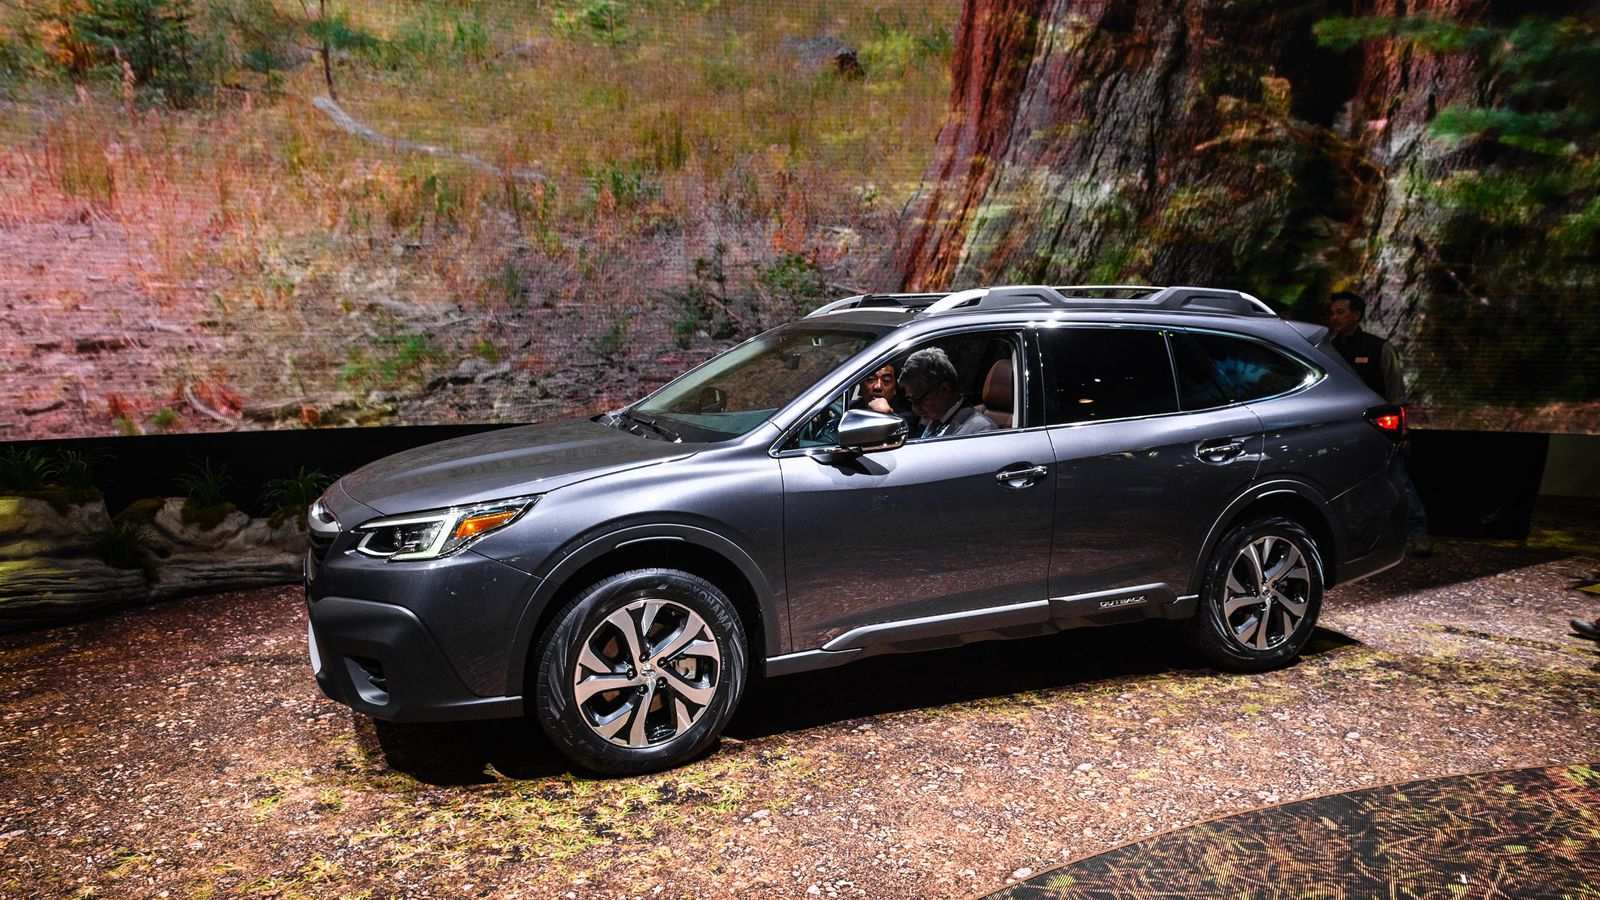 42 A Subaru Outback Update 2020 Pictures